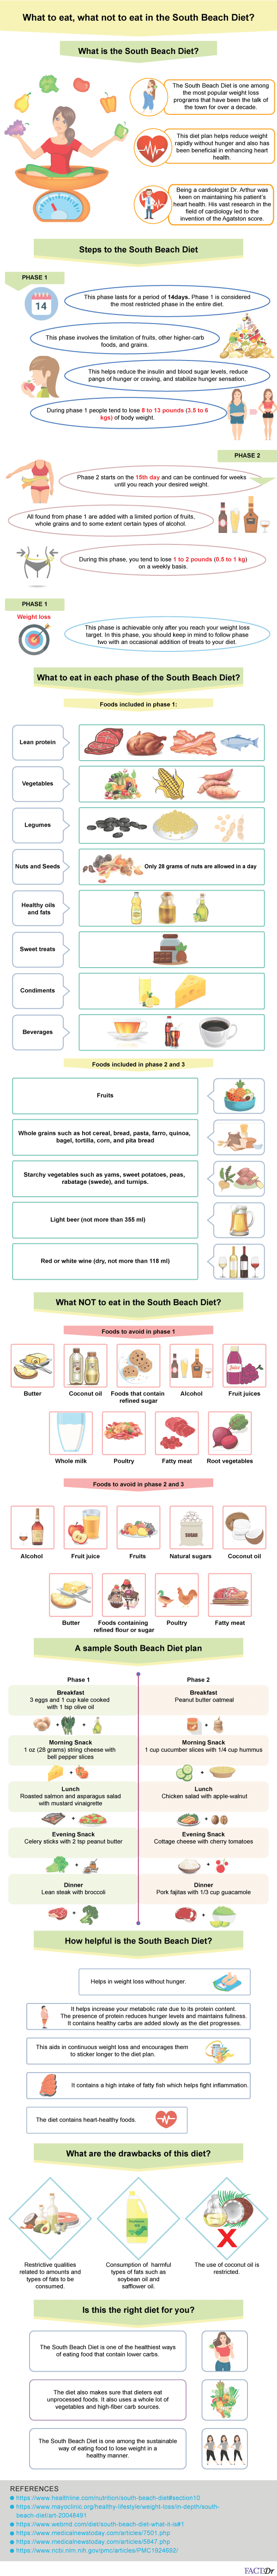 south beach diet infographic